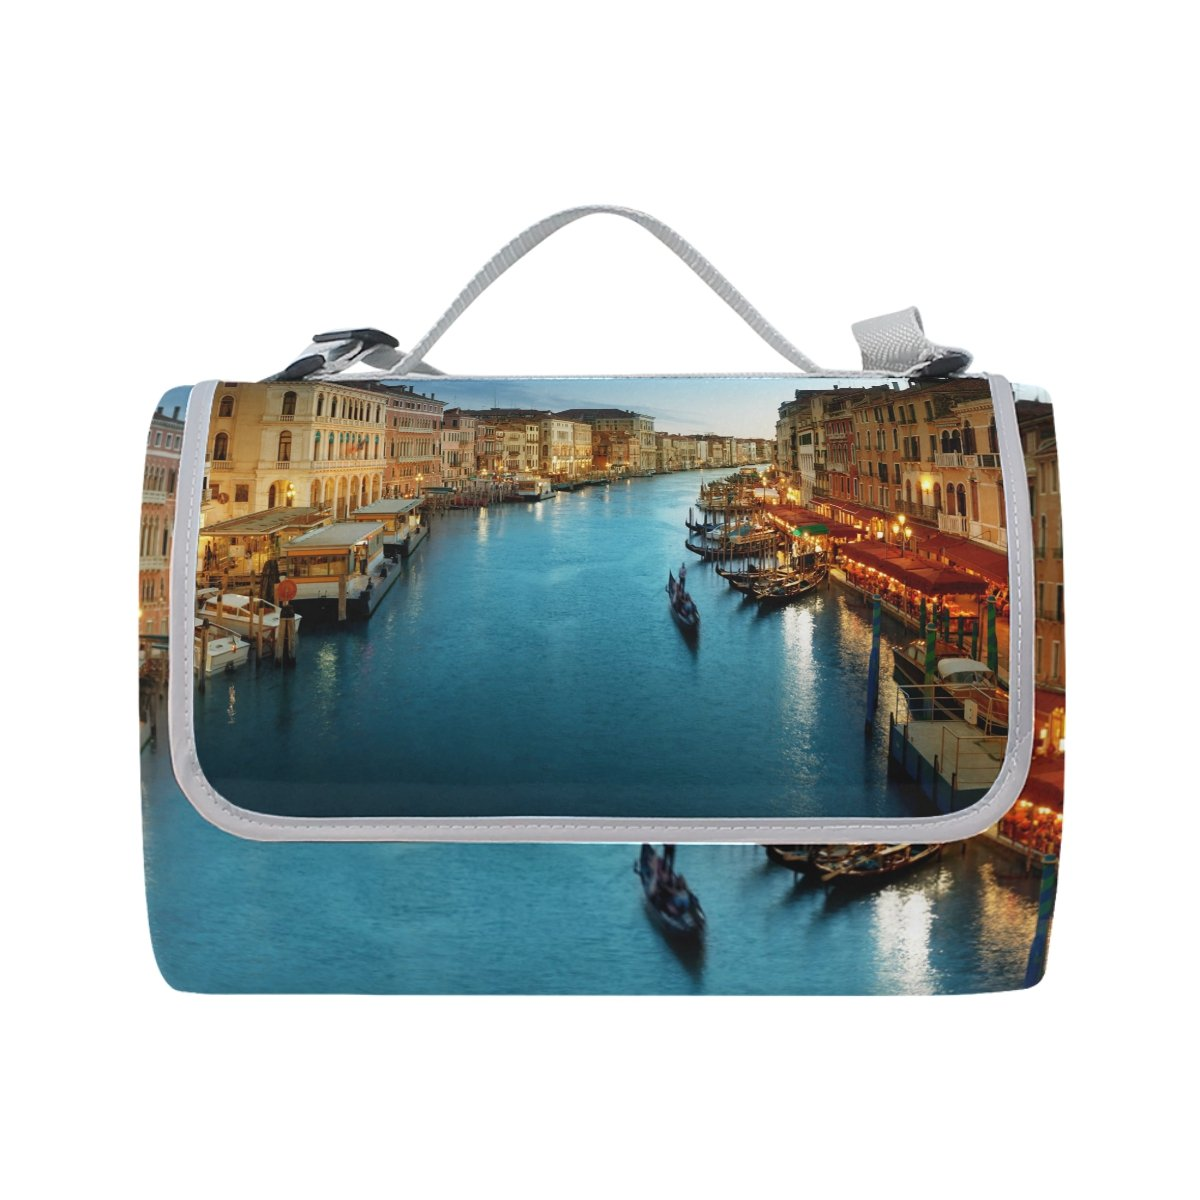 ALAZA City Sunset Venice Italy Outdoor Picnic Blanket Beach Handy Mat for Travel, Camping, Hiking and Music Festival 56x58 inch